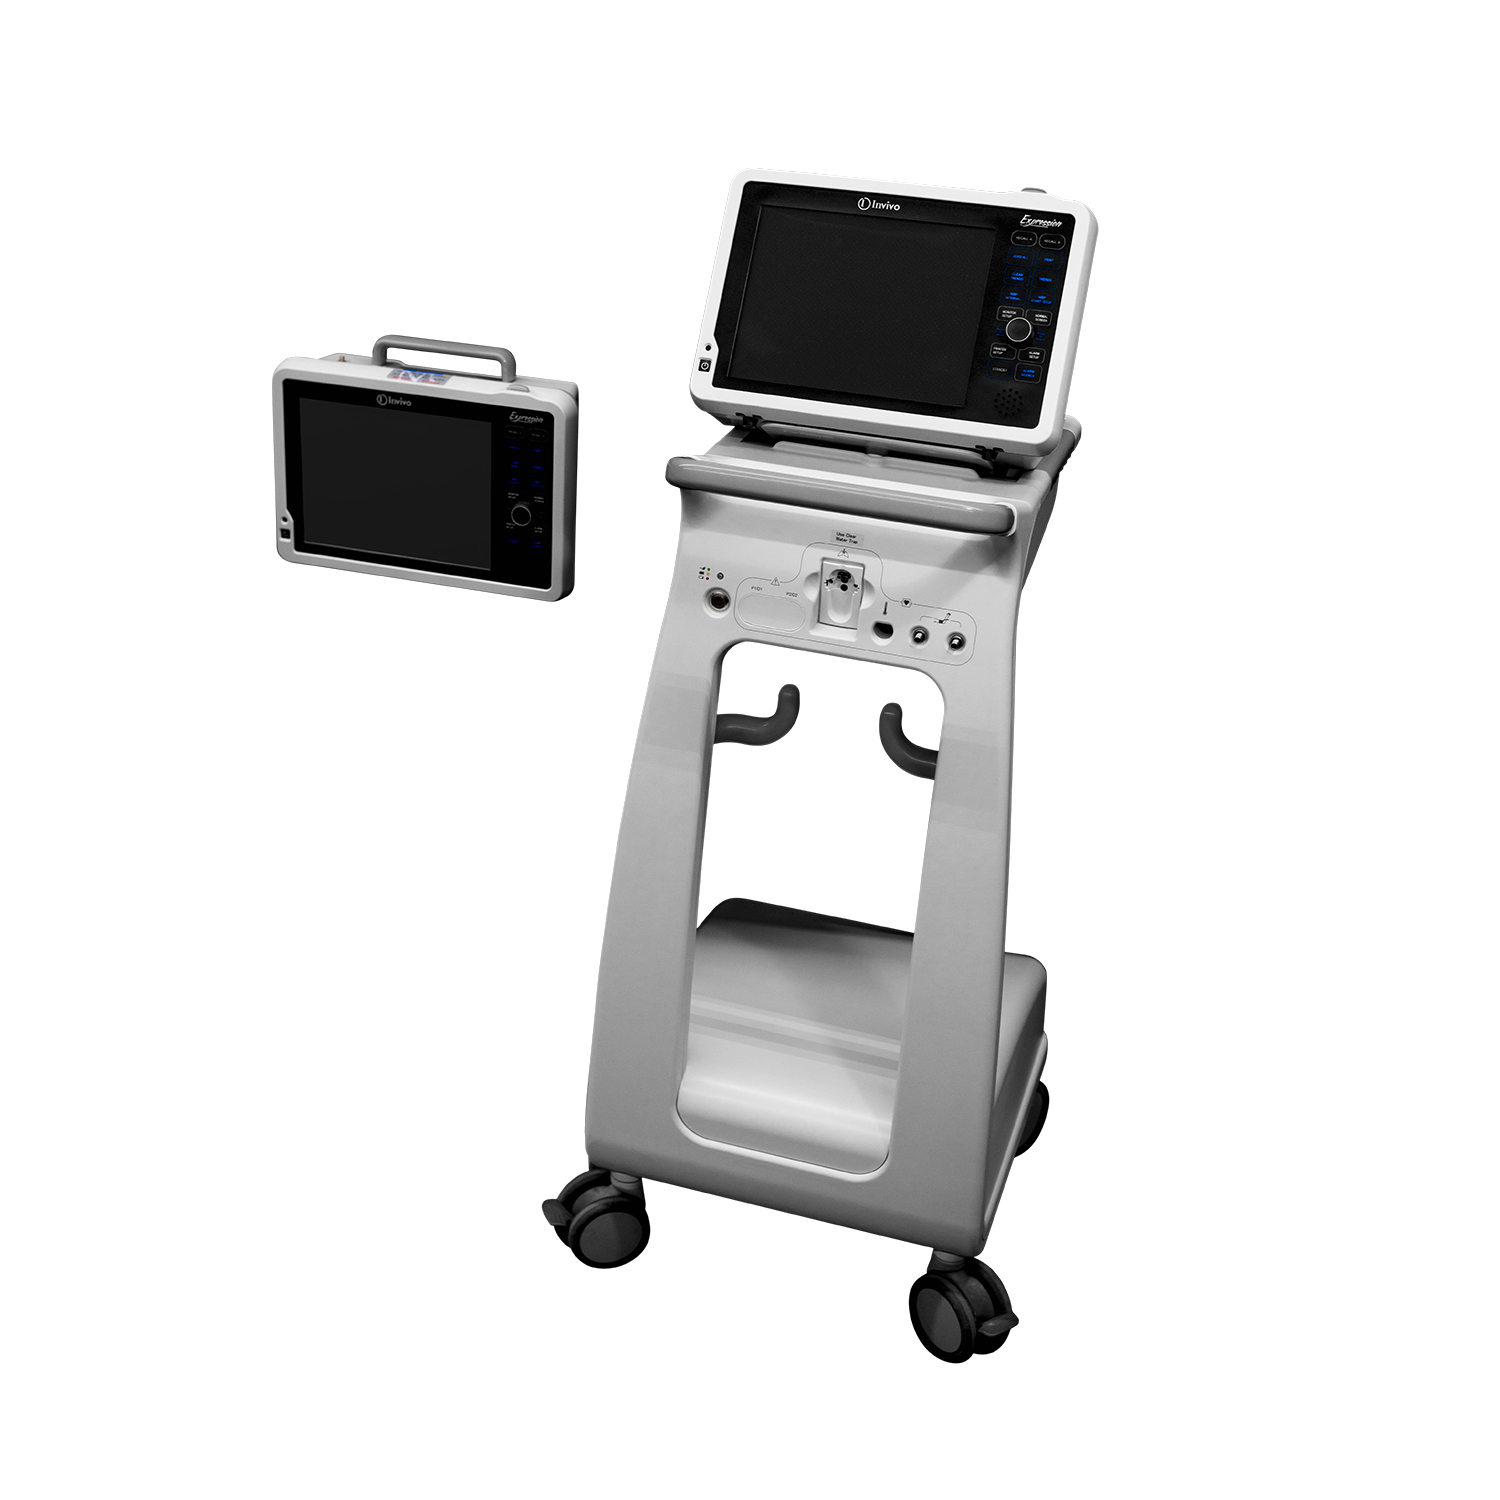 Invivo Expression MRI Patient Monitor